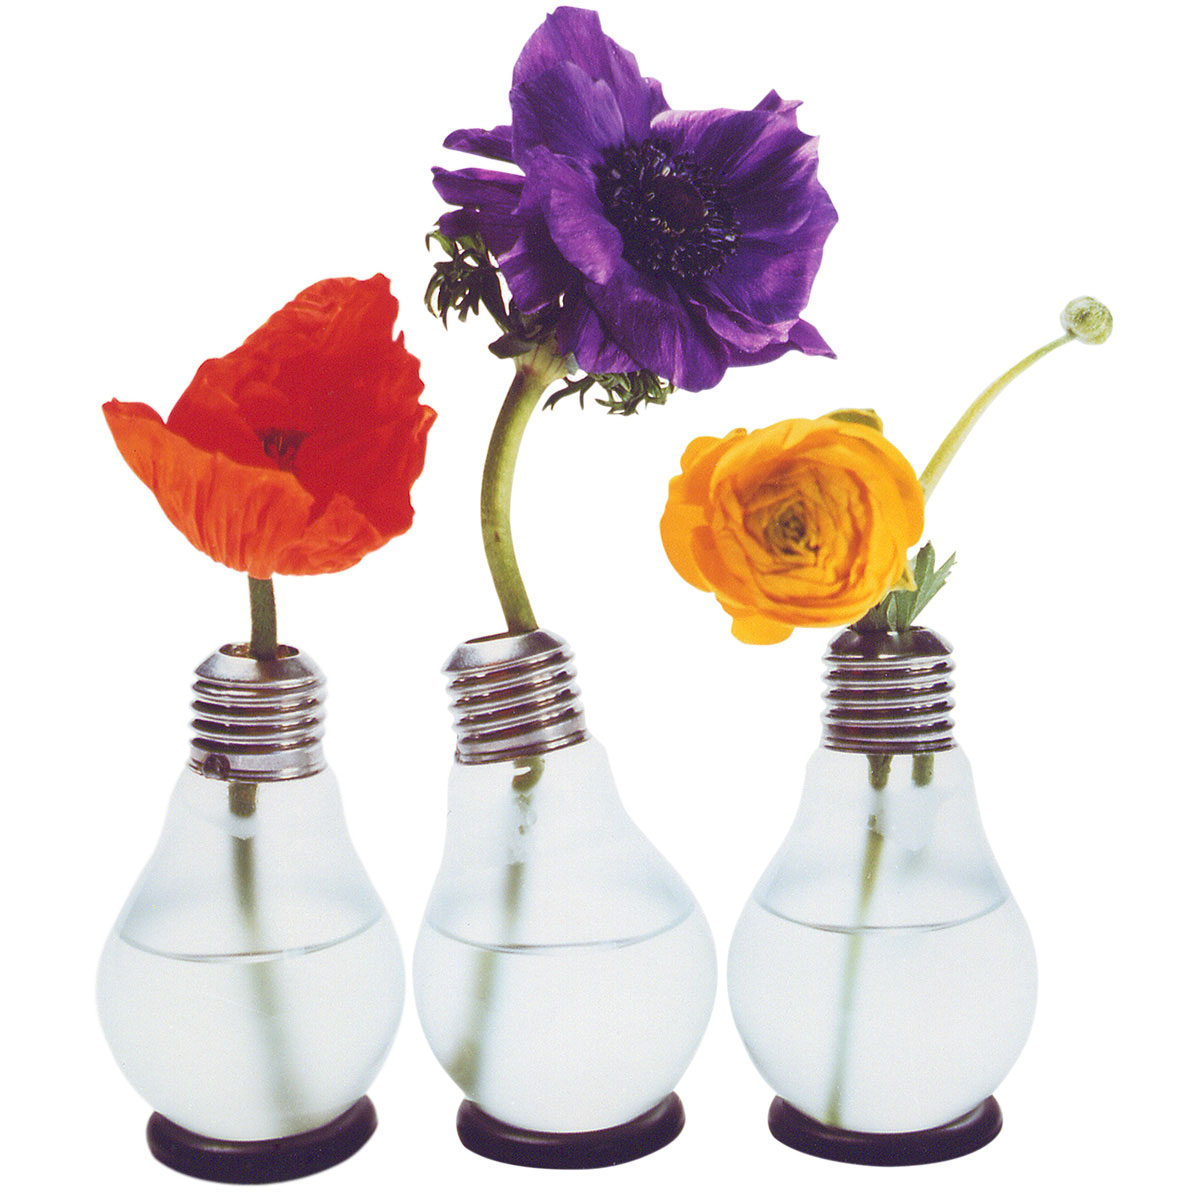 Lightbulb Vase Bluehbirne | The Design Gift Shop